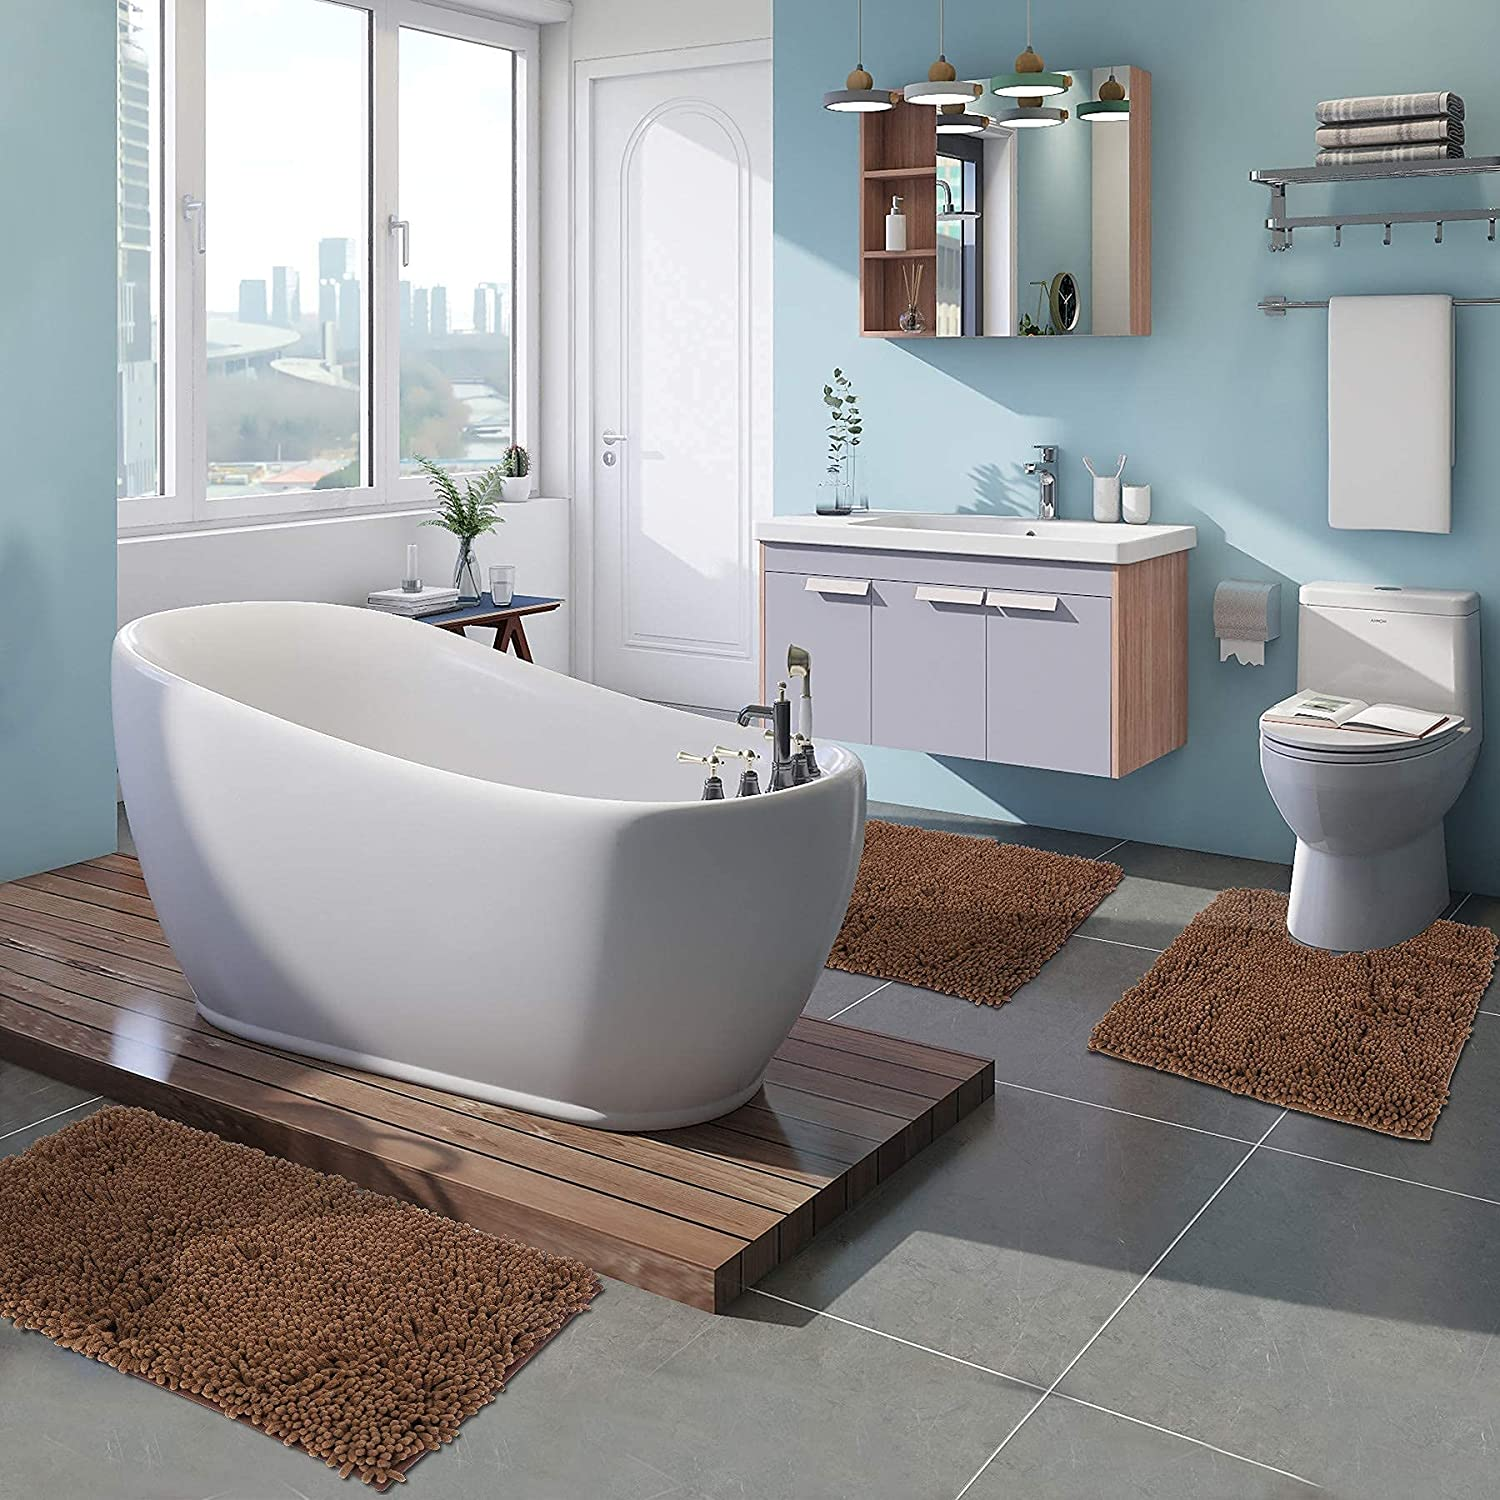 Varbucamp 3pc Bathroom Rugs Set Non Ch Shaggy Soft Slip Durable Manufacturer regenerated Philadelphia Mall product